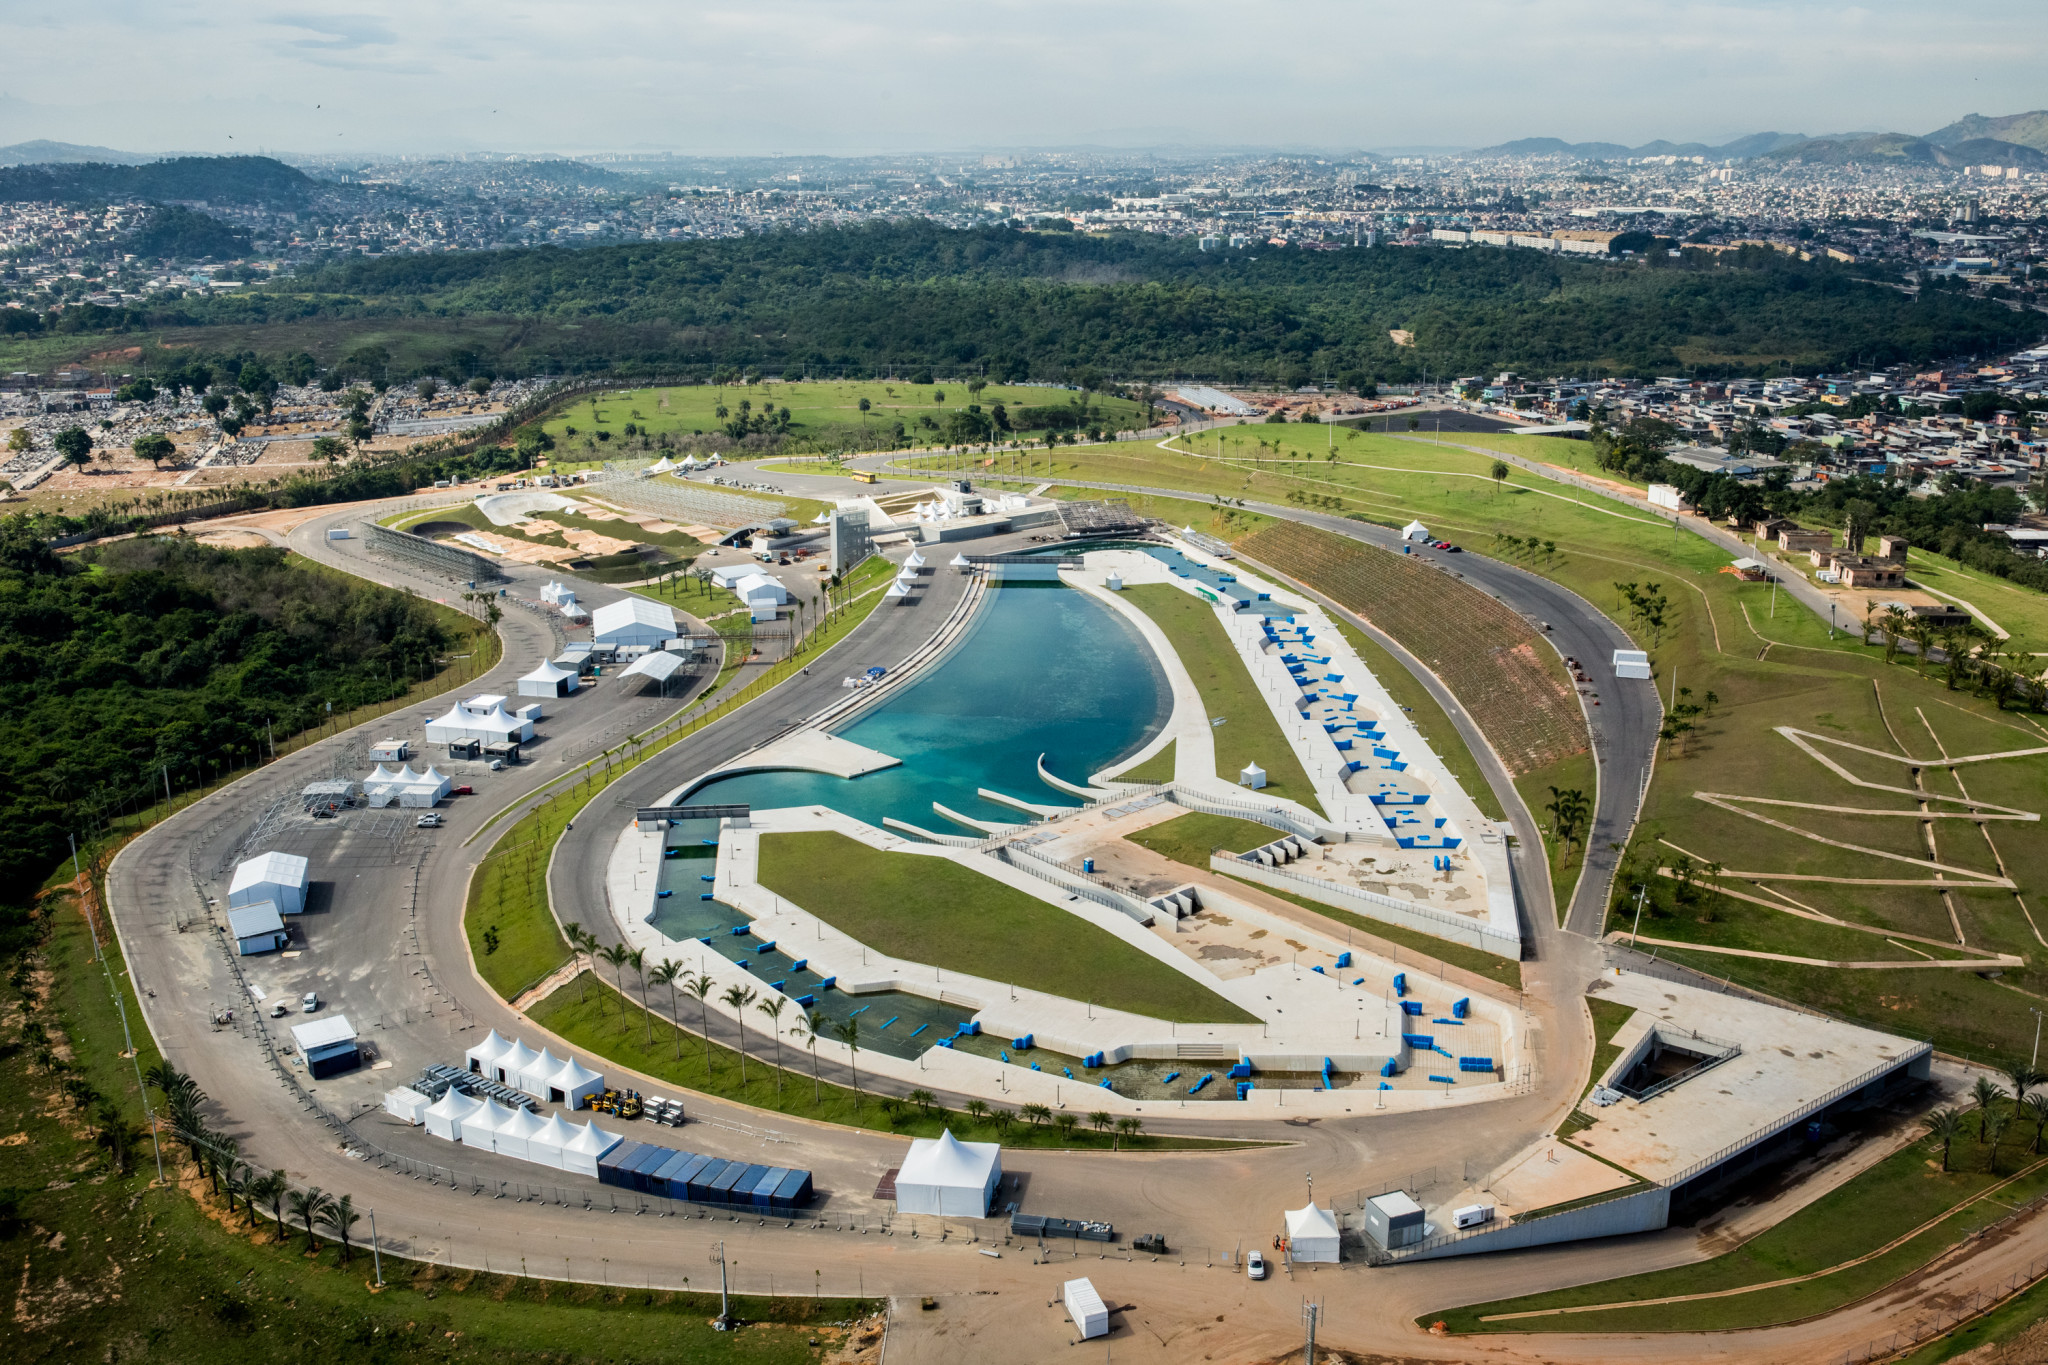 The complaint against Eduardo Paes is related to the construction of the Deodoro Olympic Park for Rio 2016 ©Wikipedia